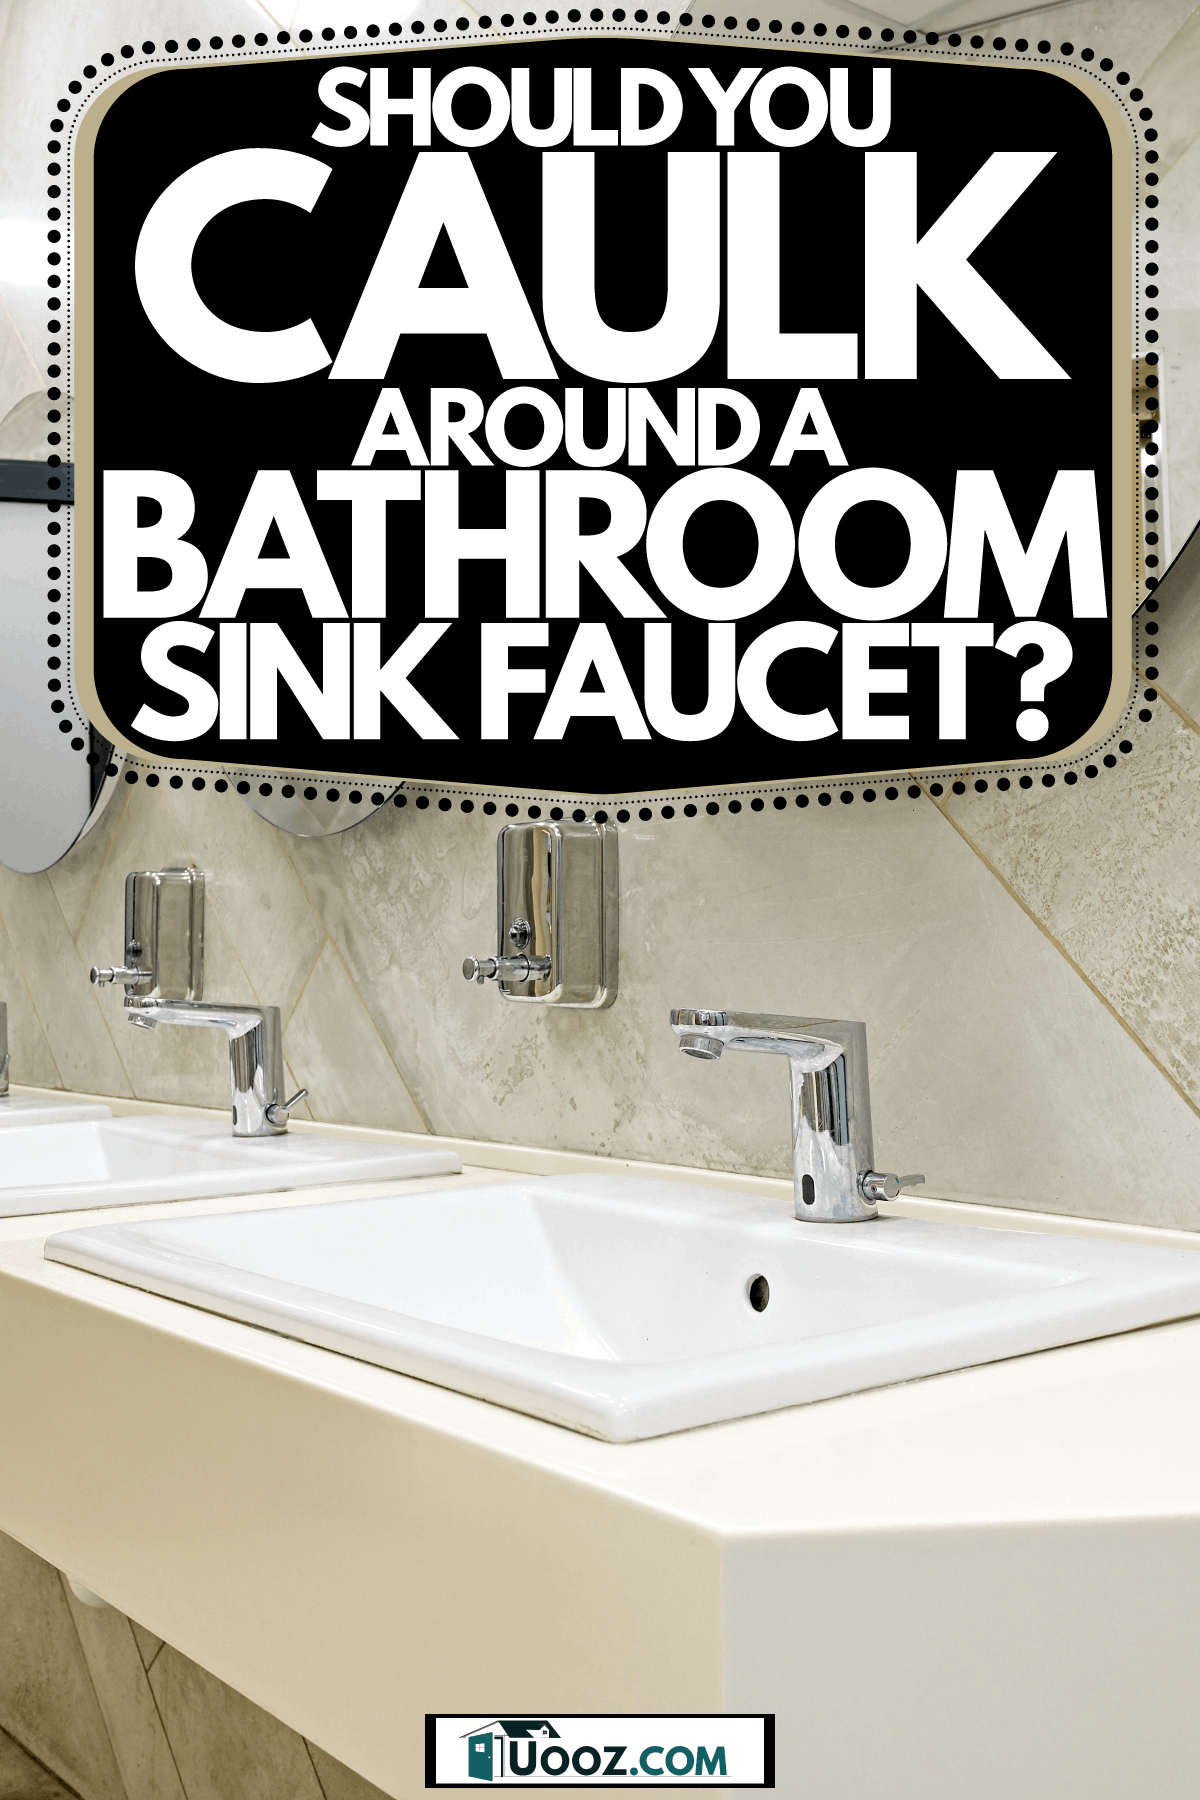 Interior of a stunning contemporary designed bathroom with a white vanity sink, three large round mirrors, and a door with frost, Should You Caulk Around A Bathroom Sink Faucet?